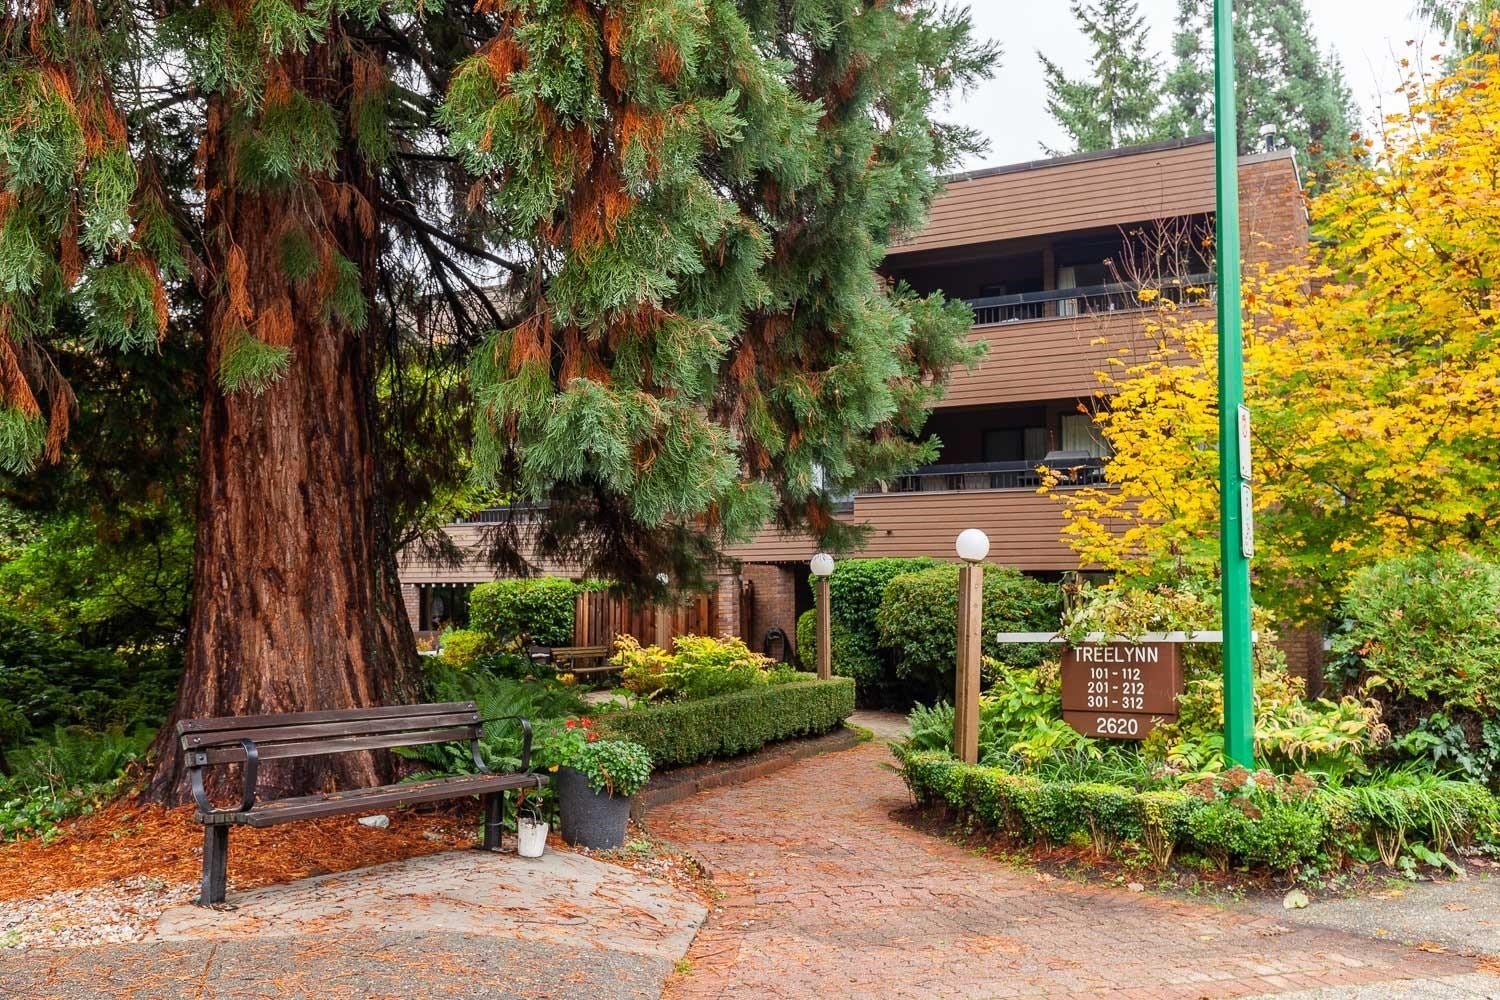 103 2620 FROMME ROAD - Lynn Valley Apartment/Condo for sale, 2 Bedrooms (R2627473) - #1